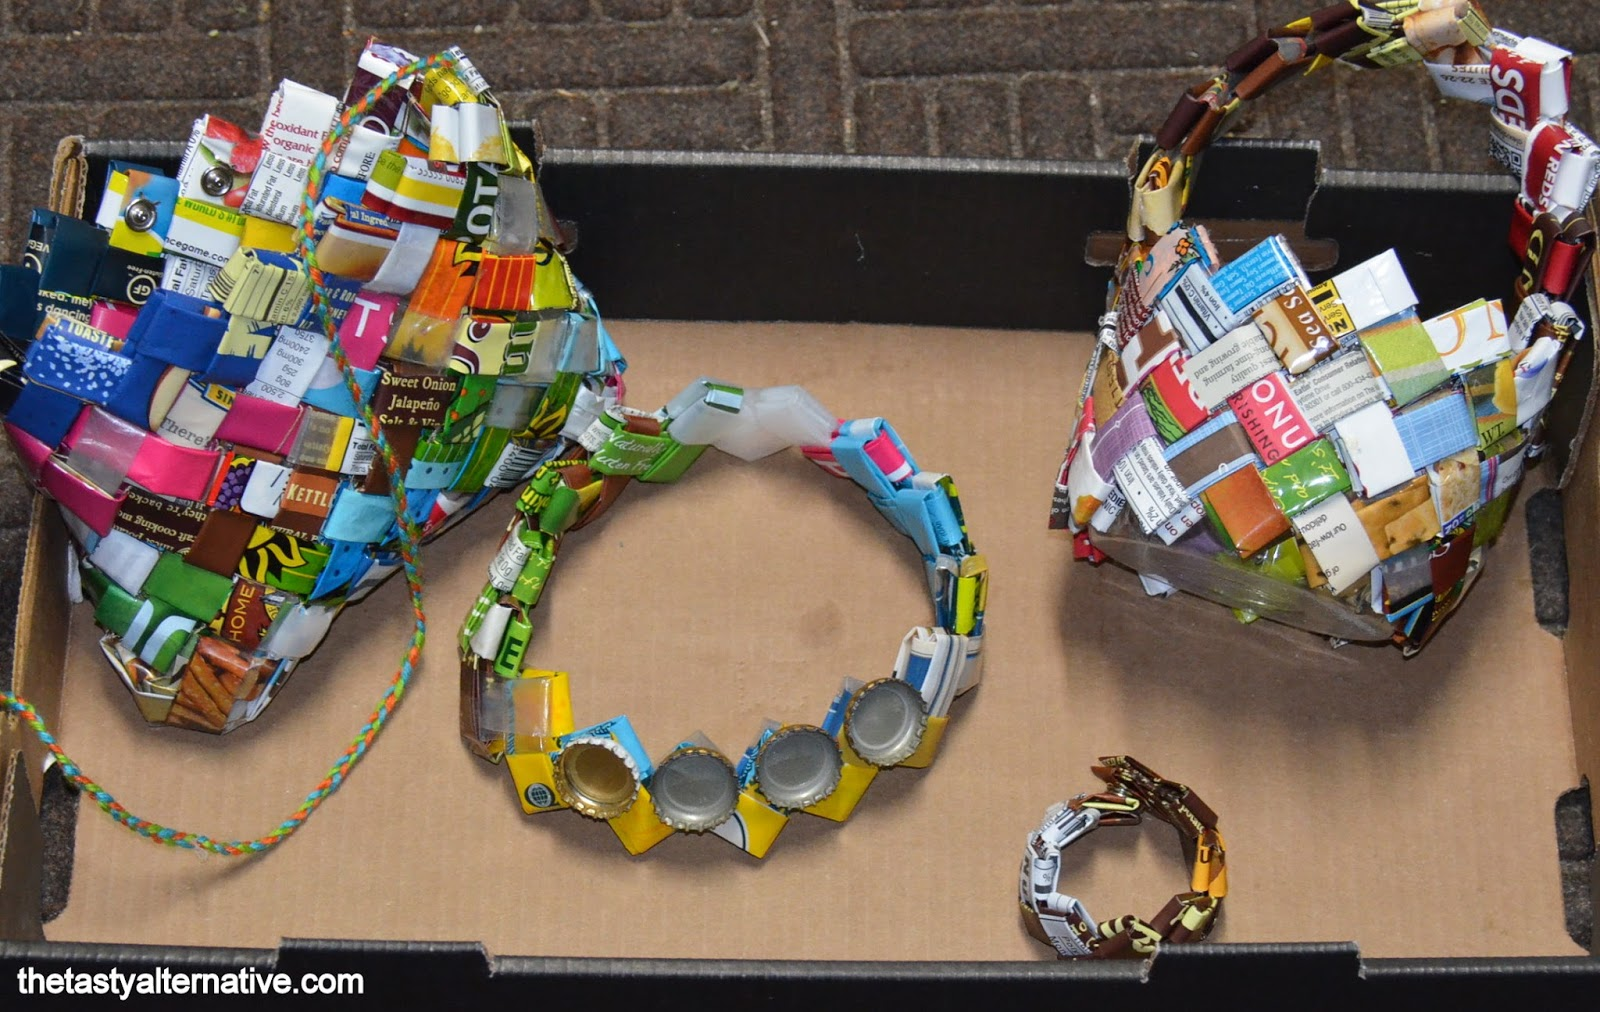 Waste material activity arts and crafts project ideas for Waste material ideas